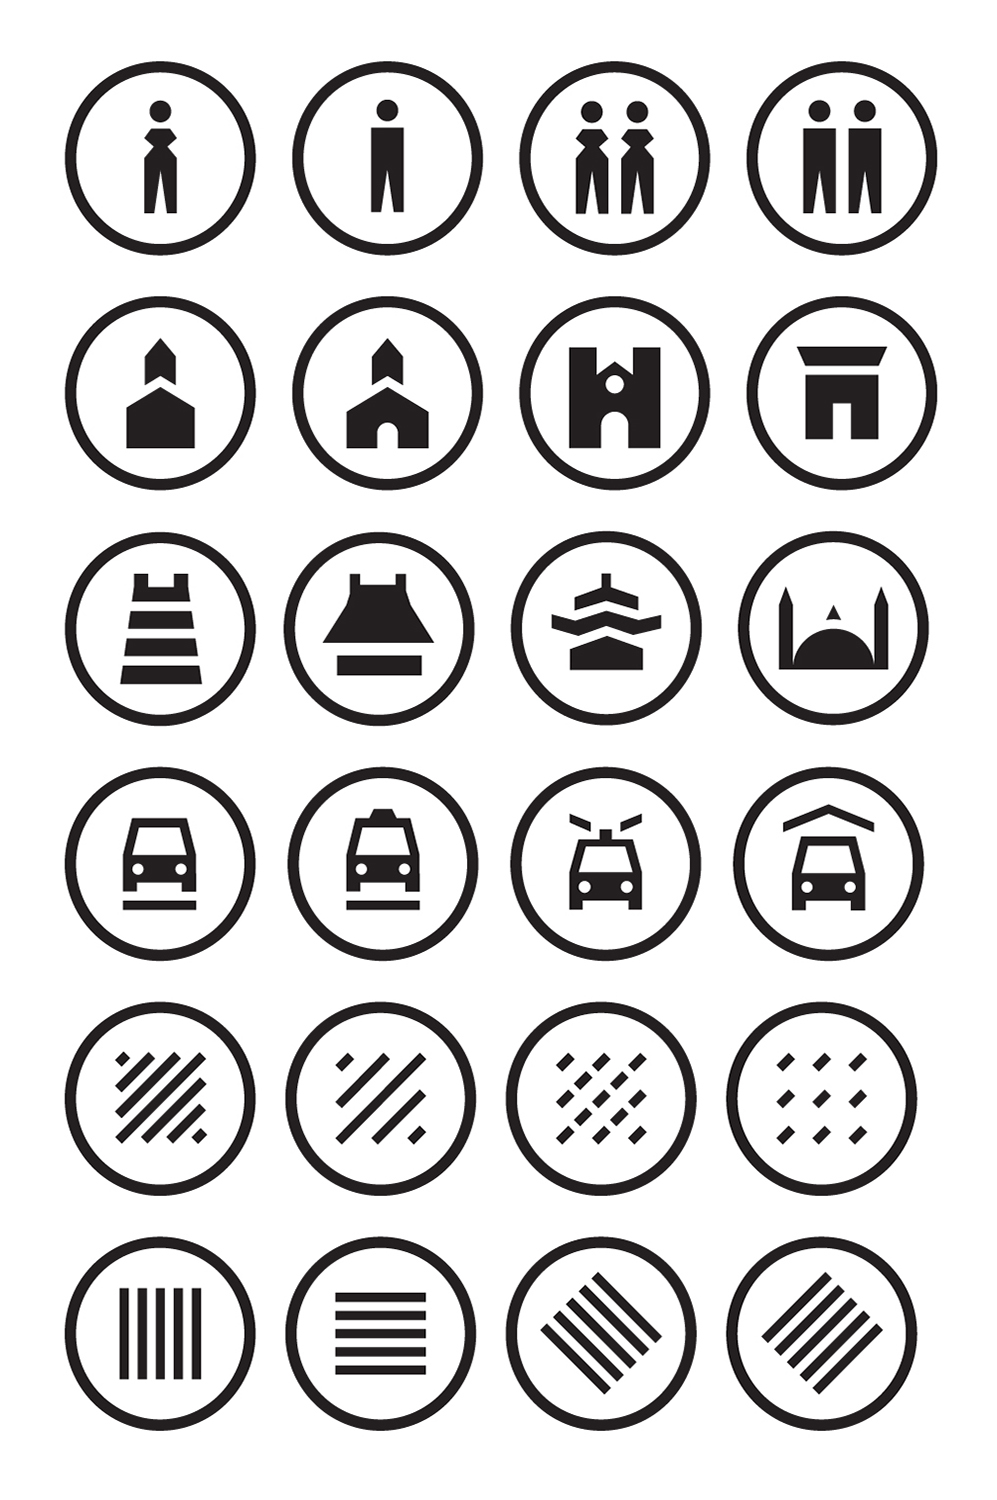 2015_Ceremony-Pictogram-02.jpg